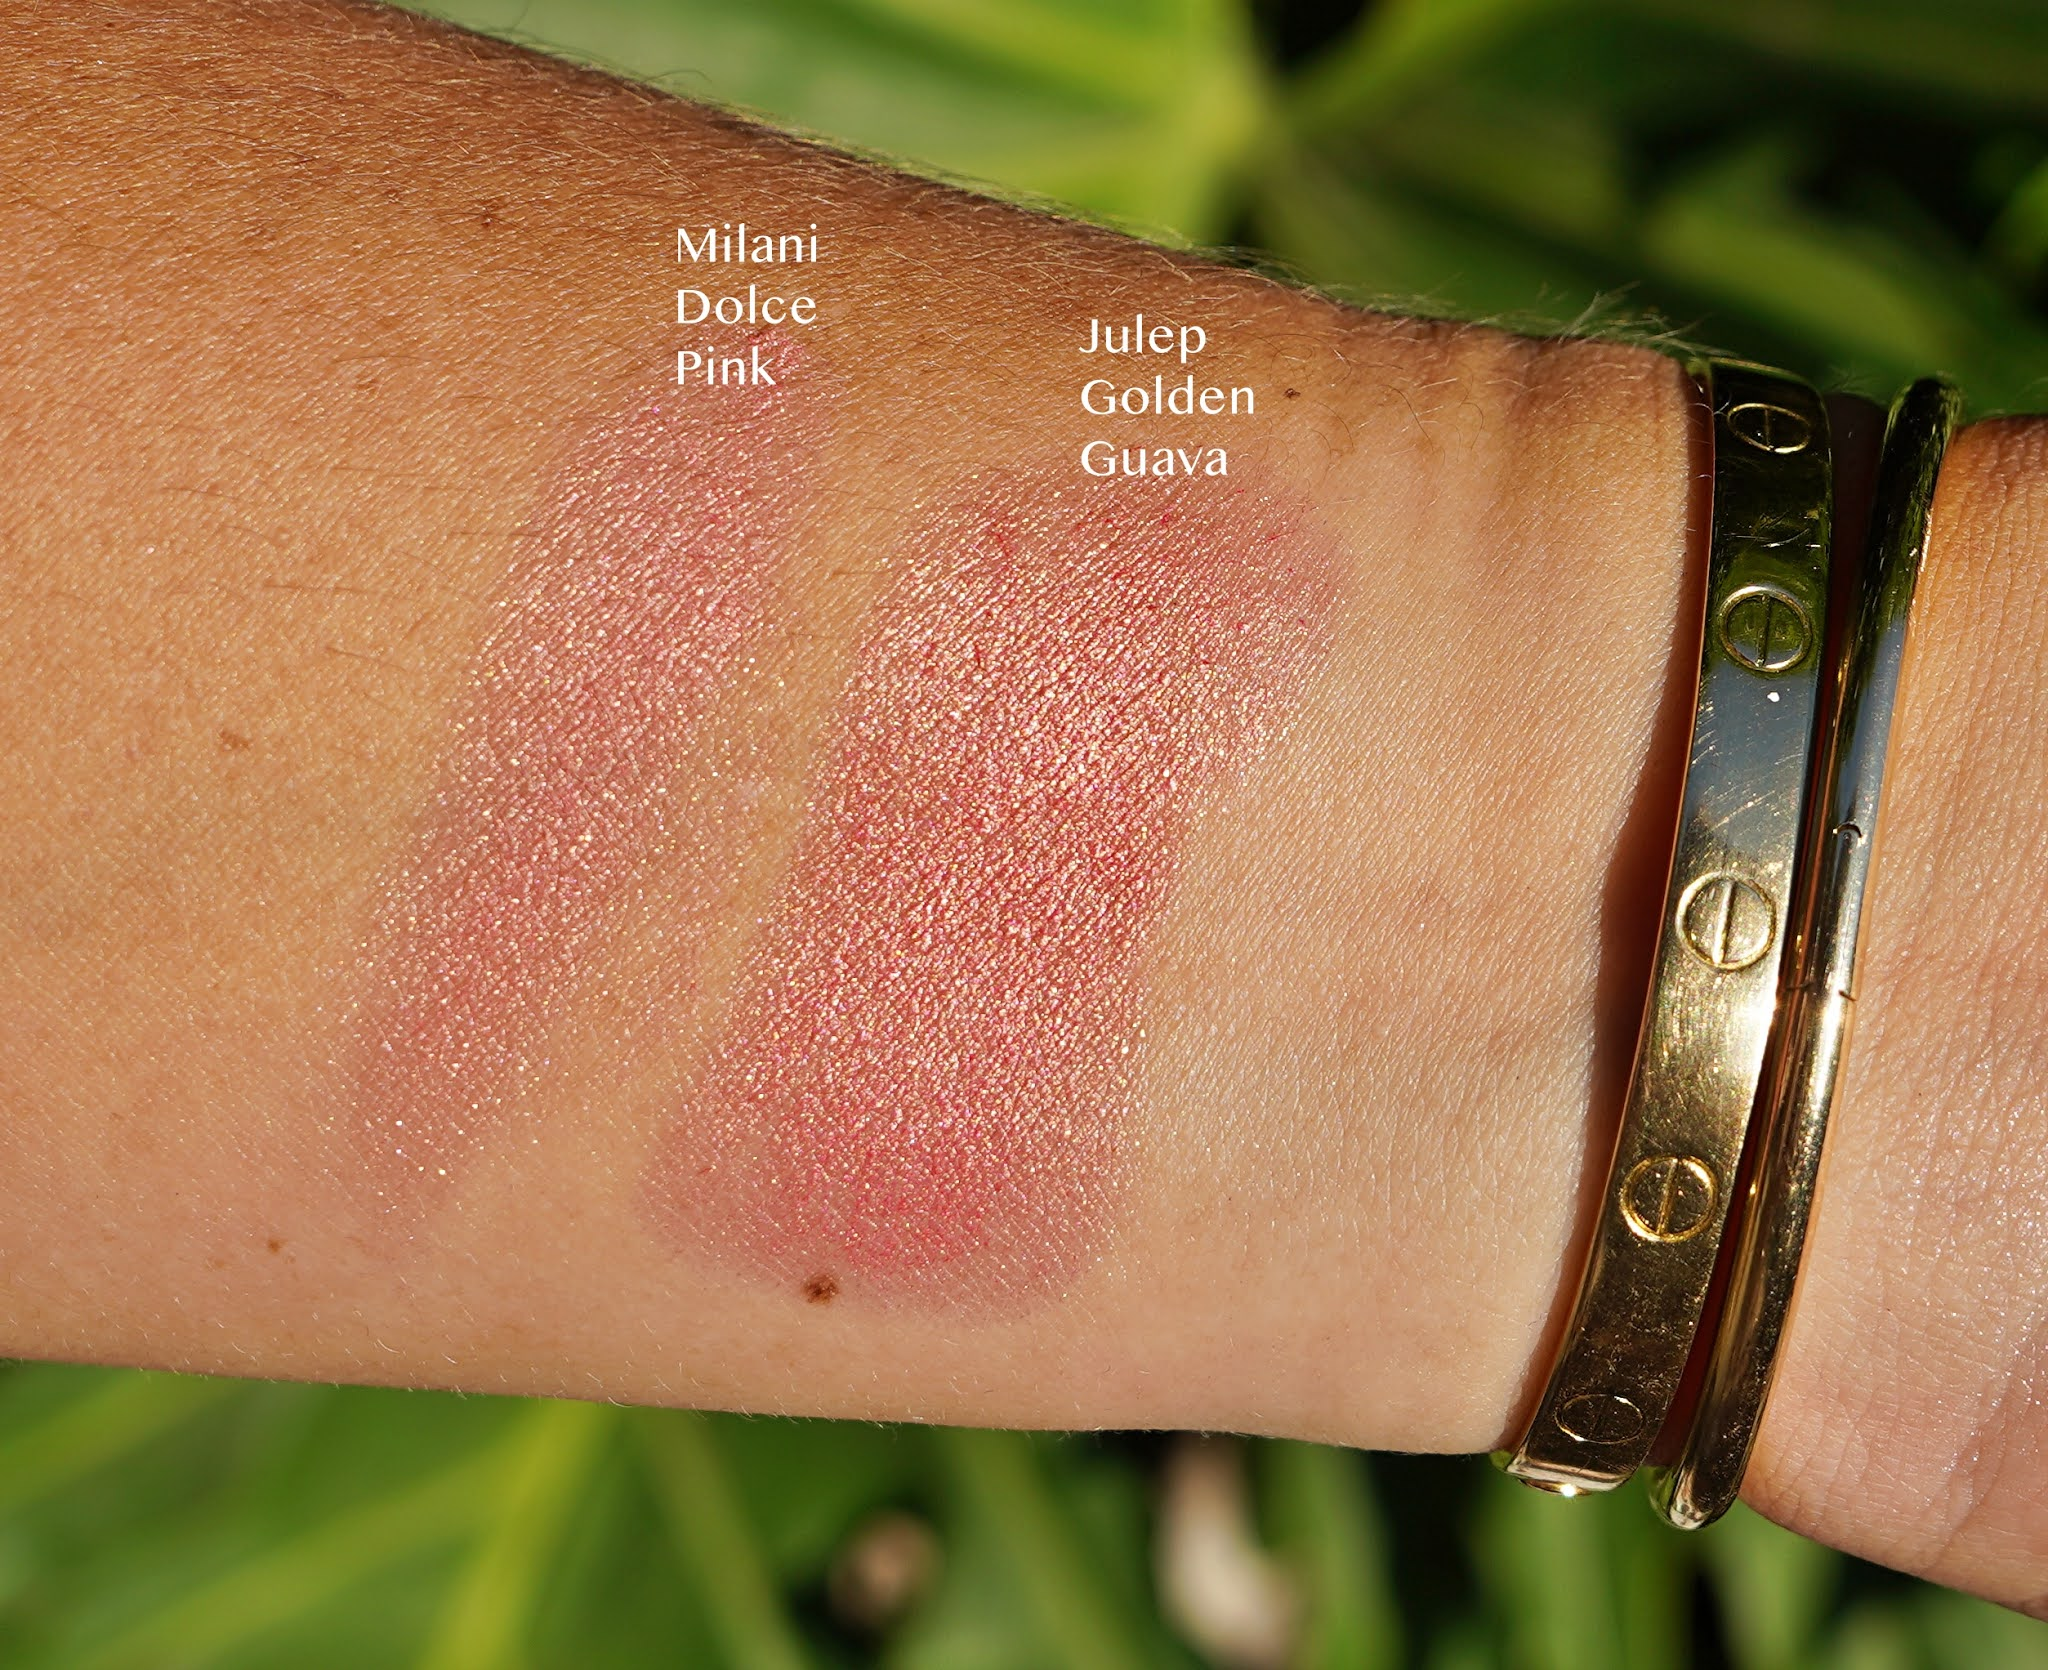 face makeup swatches in an arm